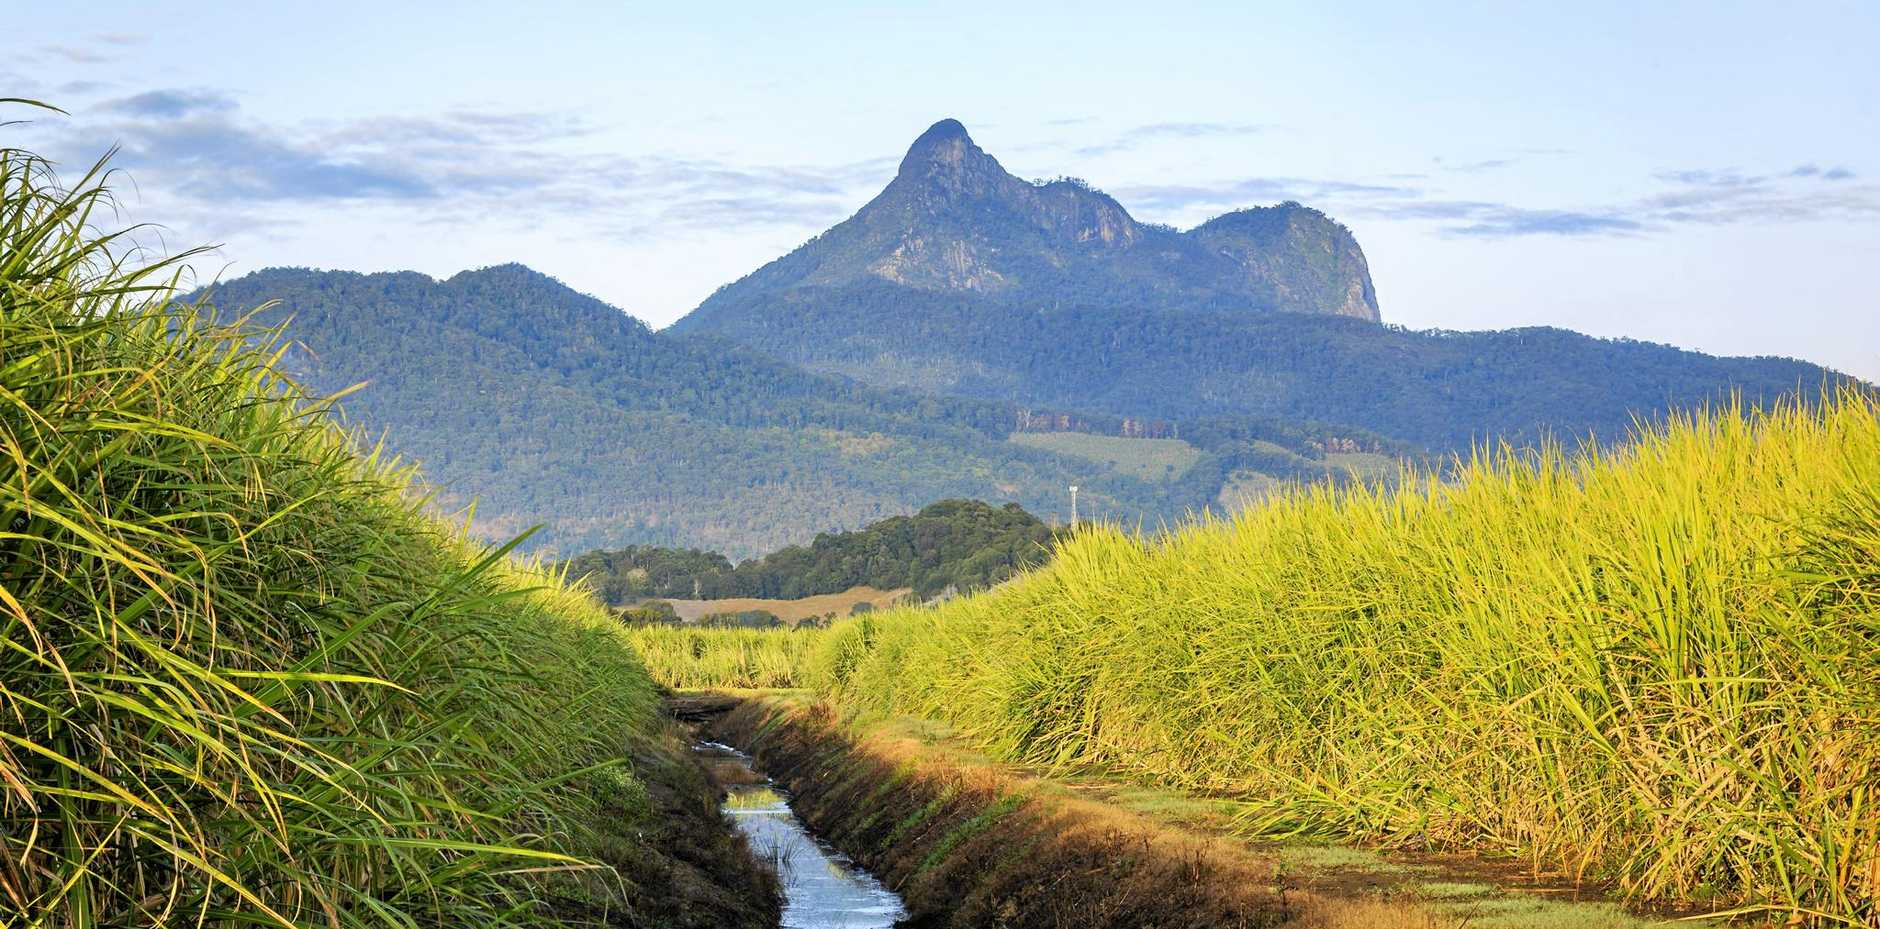 Our sleeping giant: Mt Warning overlooking the cane fields of the Tweed.